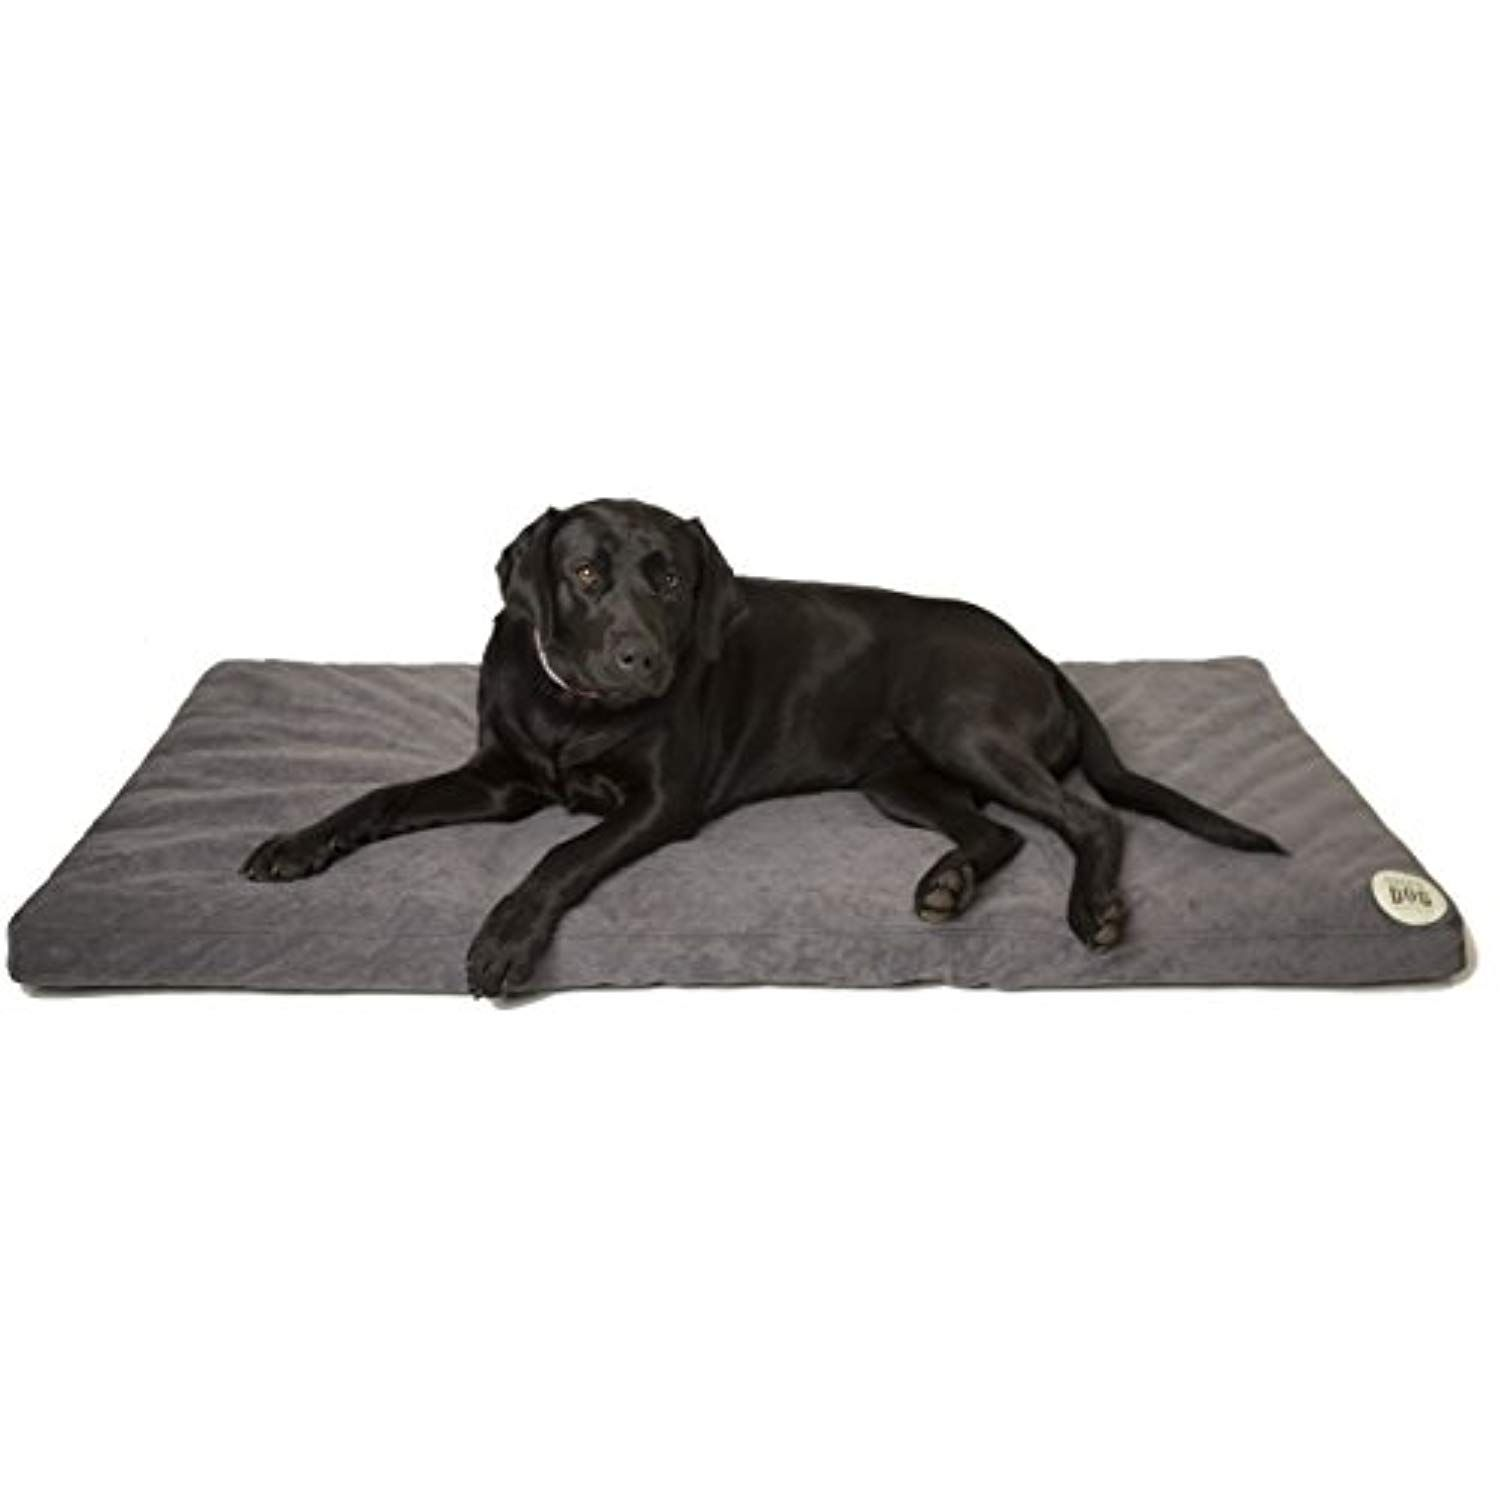 Orthopedic Dog Bed Underdog Pet Products Machine Washable Cover And Inner Mattress Stain Odor Liquid Resistant Dog Pet Beds Orthopedic Dog Bed Dog Bed